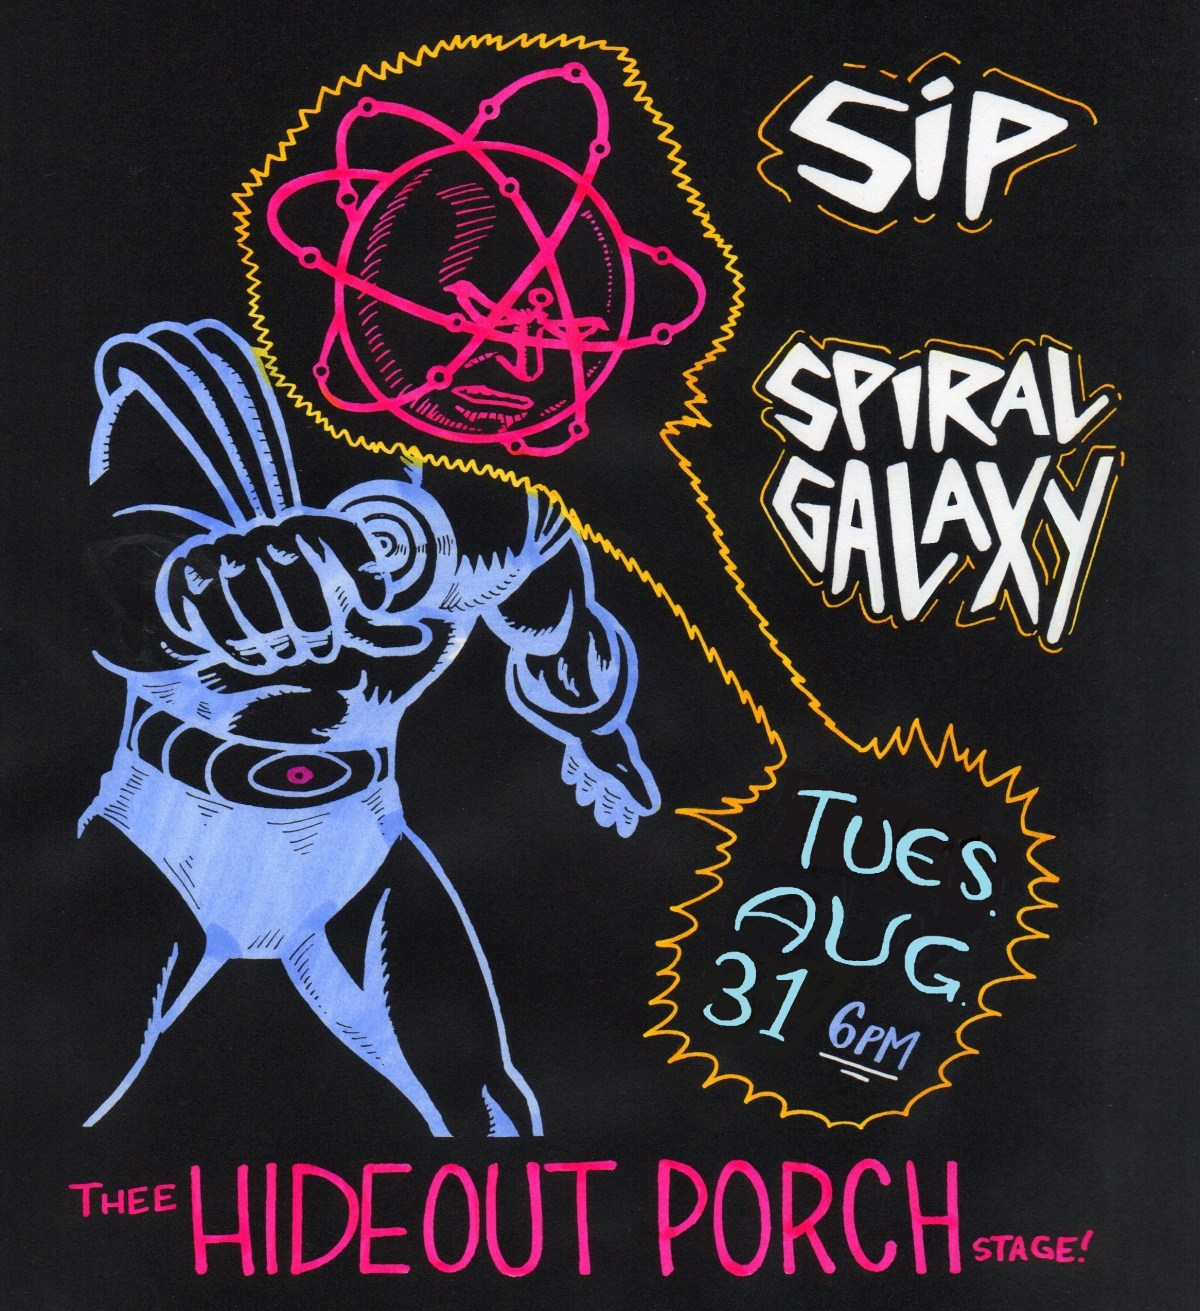 Hand-drawn poster for a Hideout show by Spiral Galaxy and SiP